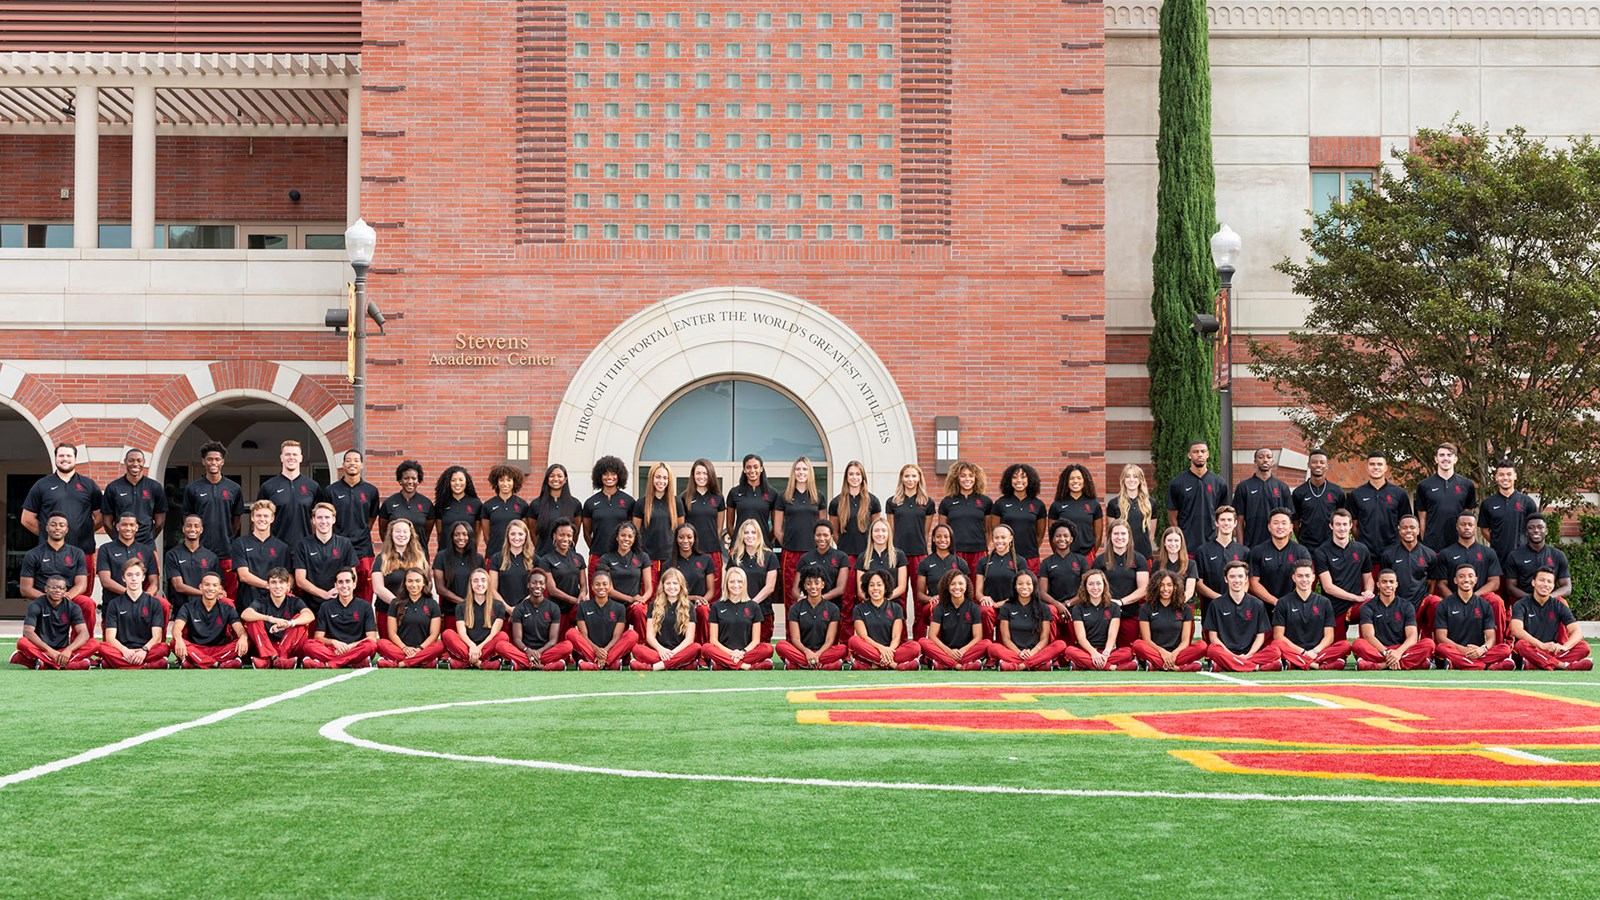 2019 Track & Field Roster - USC Athletics